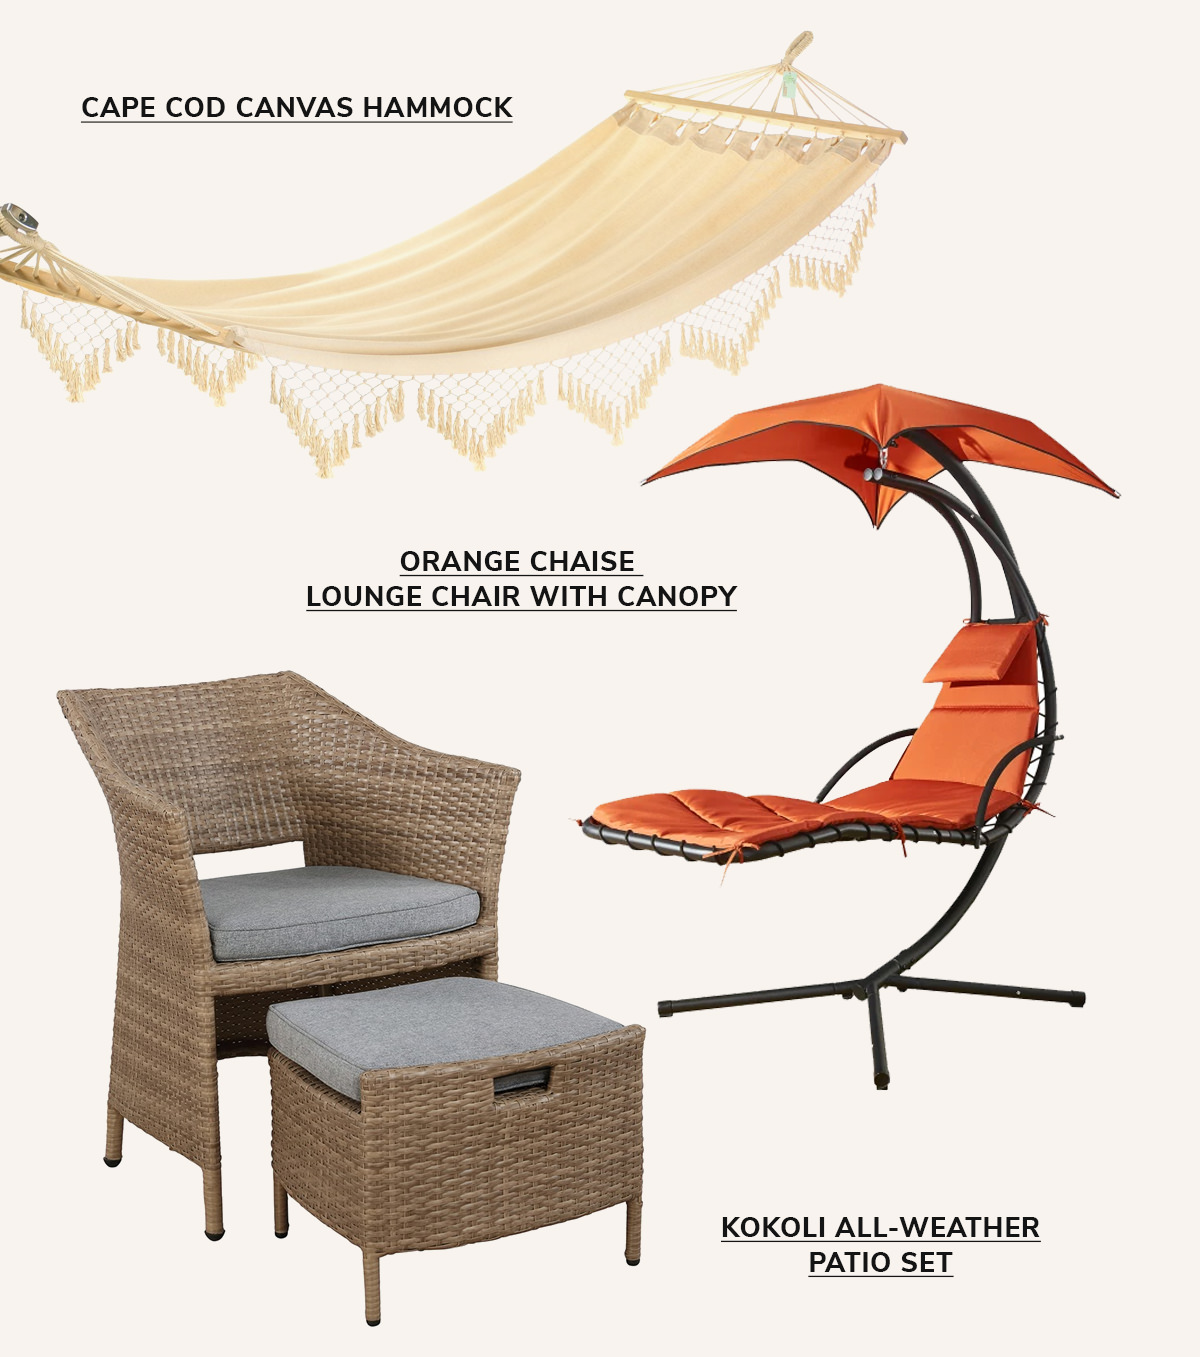 Cape Cod Canvas Hammock,Orange Chaise Lounge Chair with Canopy,Kokoli All-Weather Patio Set   SHOP NOW